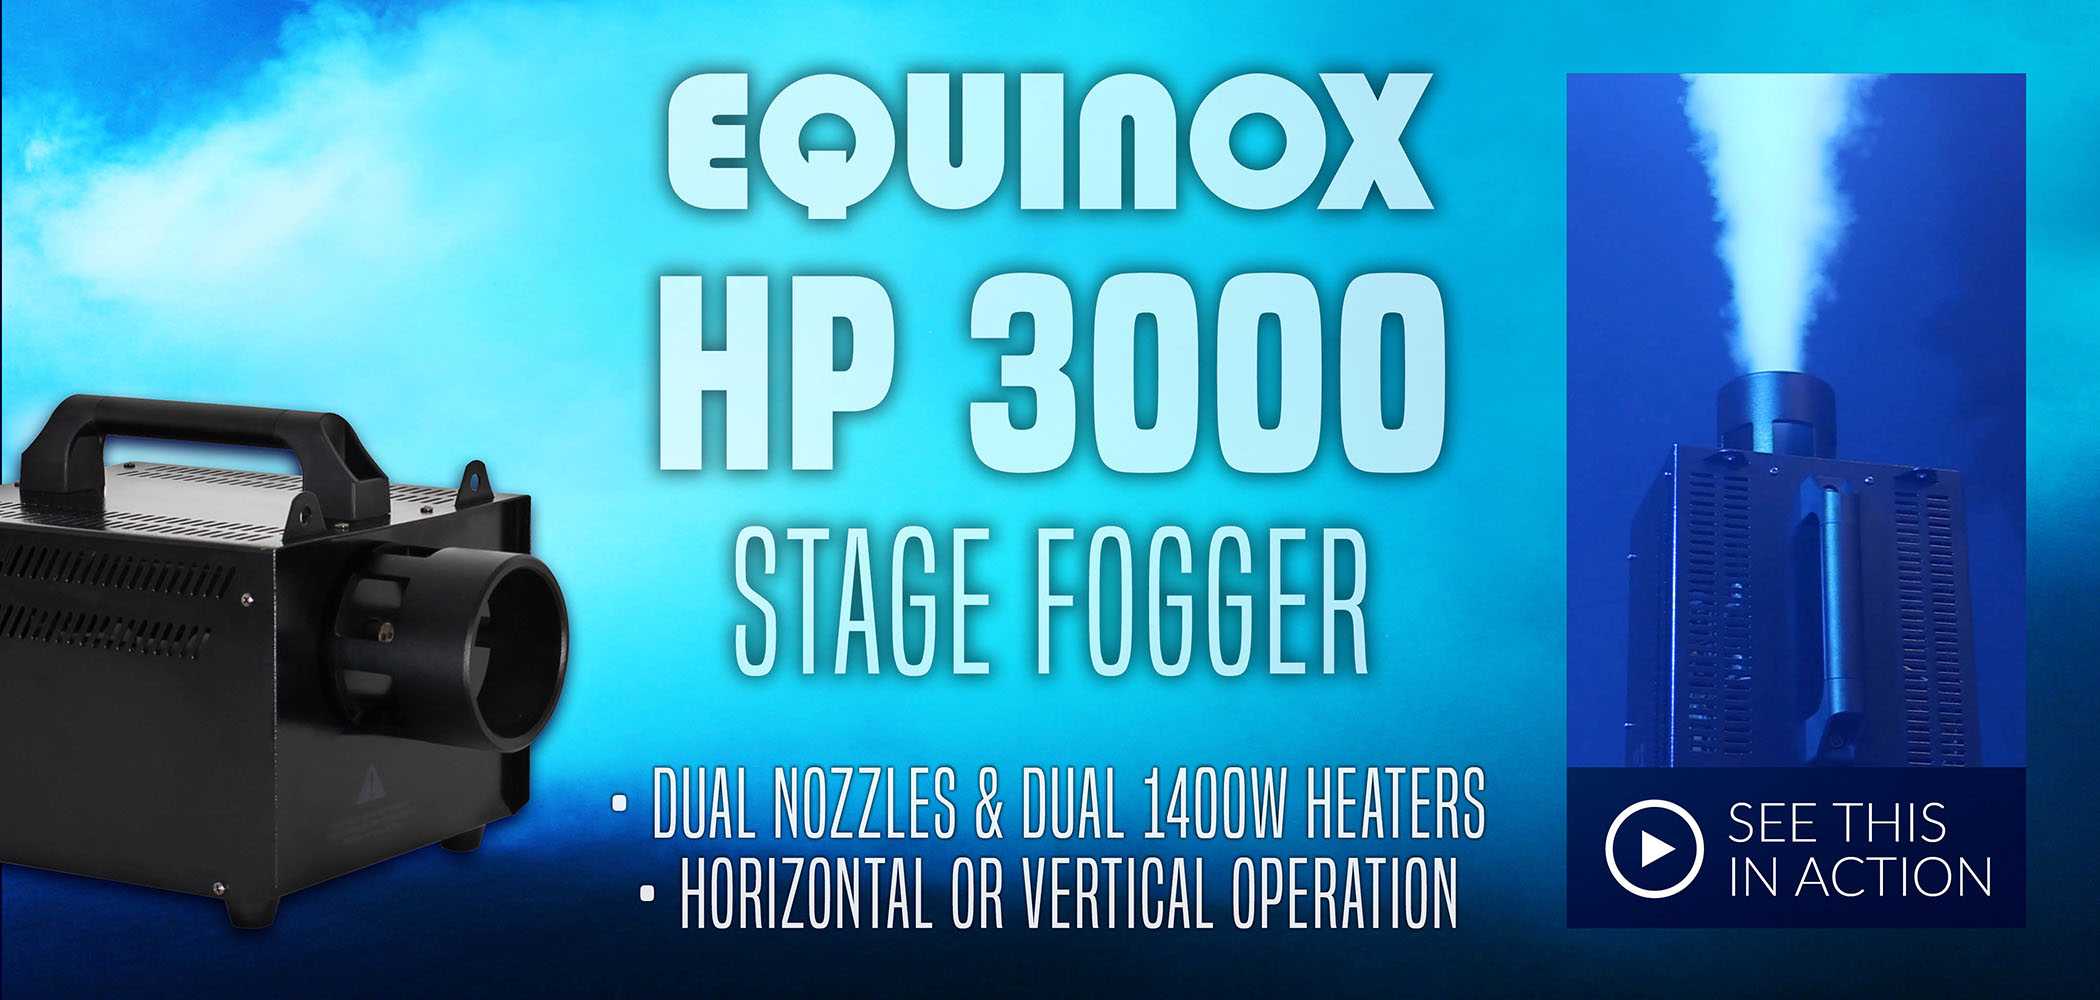 HP 3000 Stage Fogger